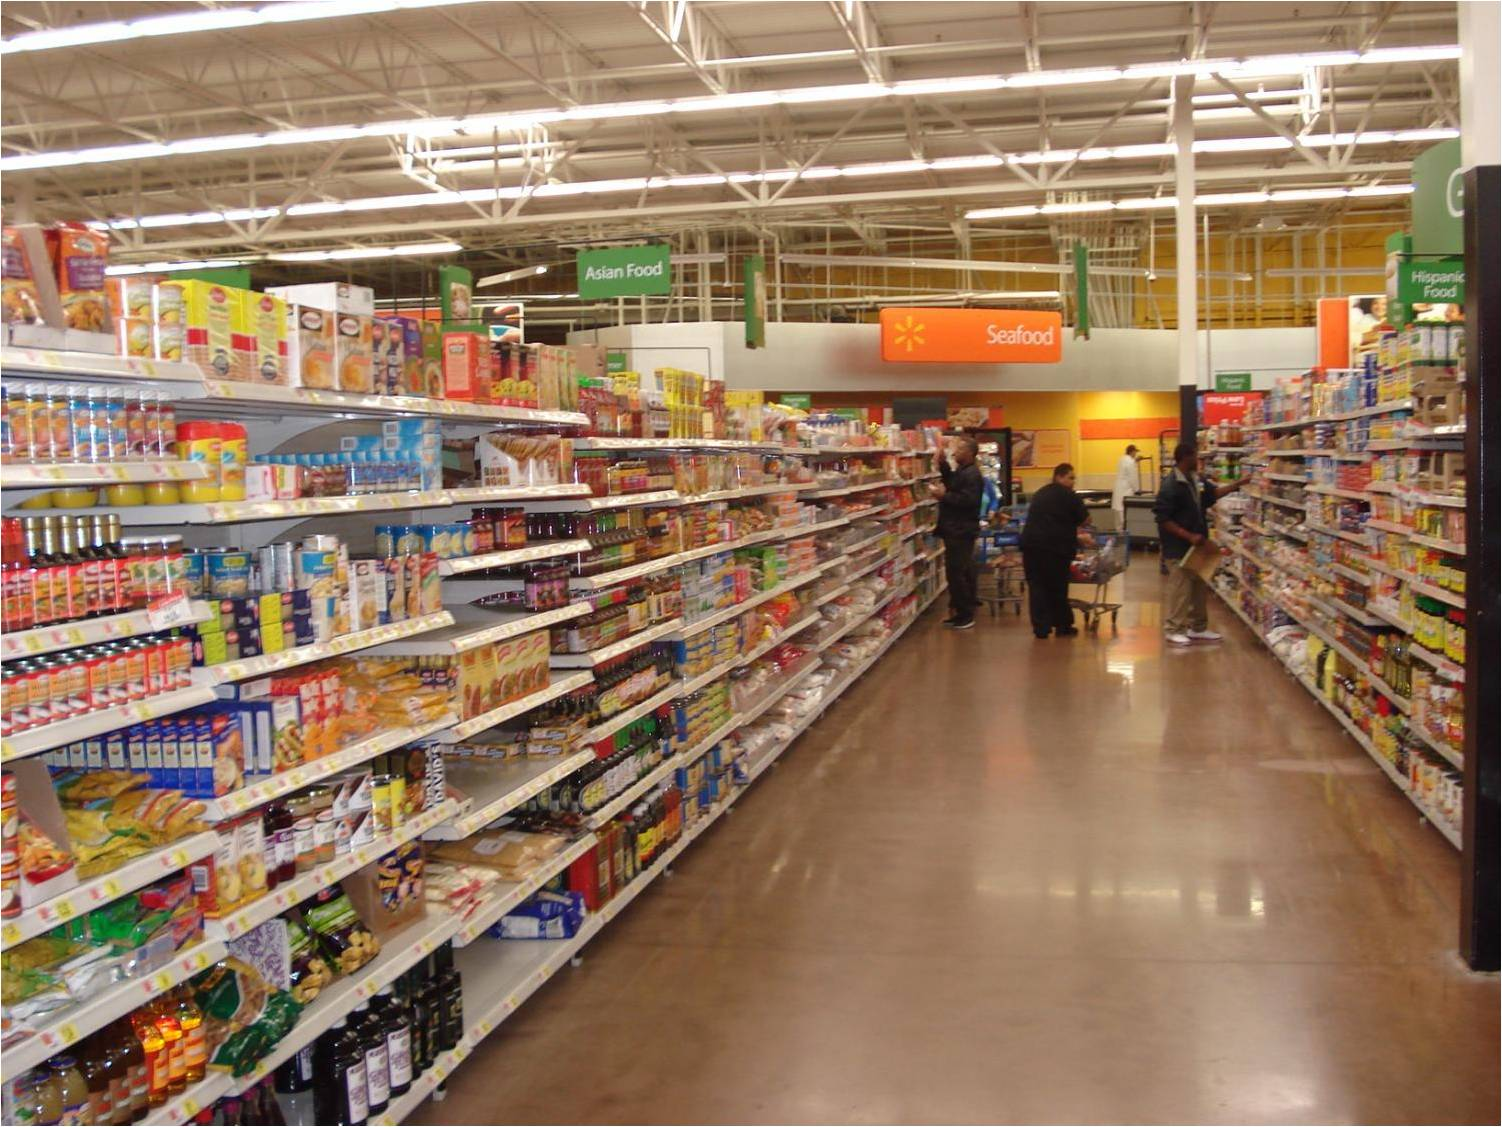 Lowes Foods Drug Test Policy